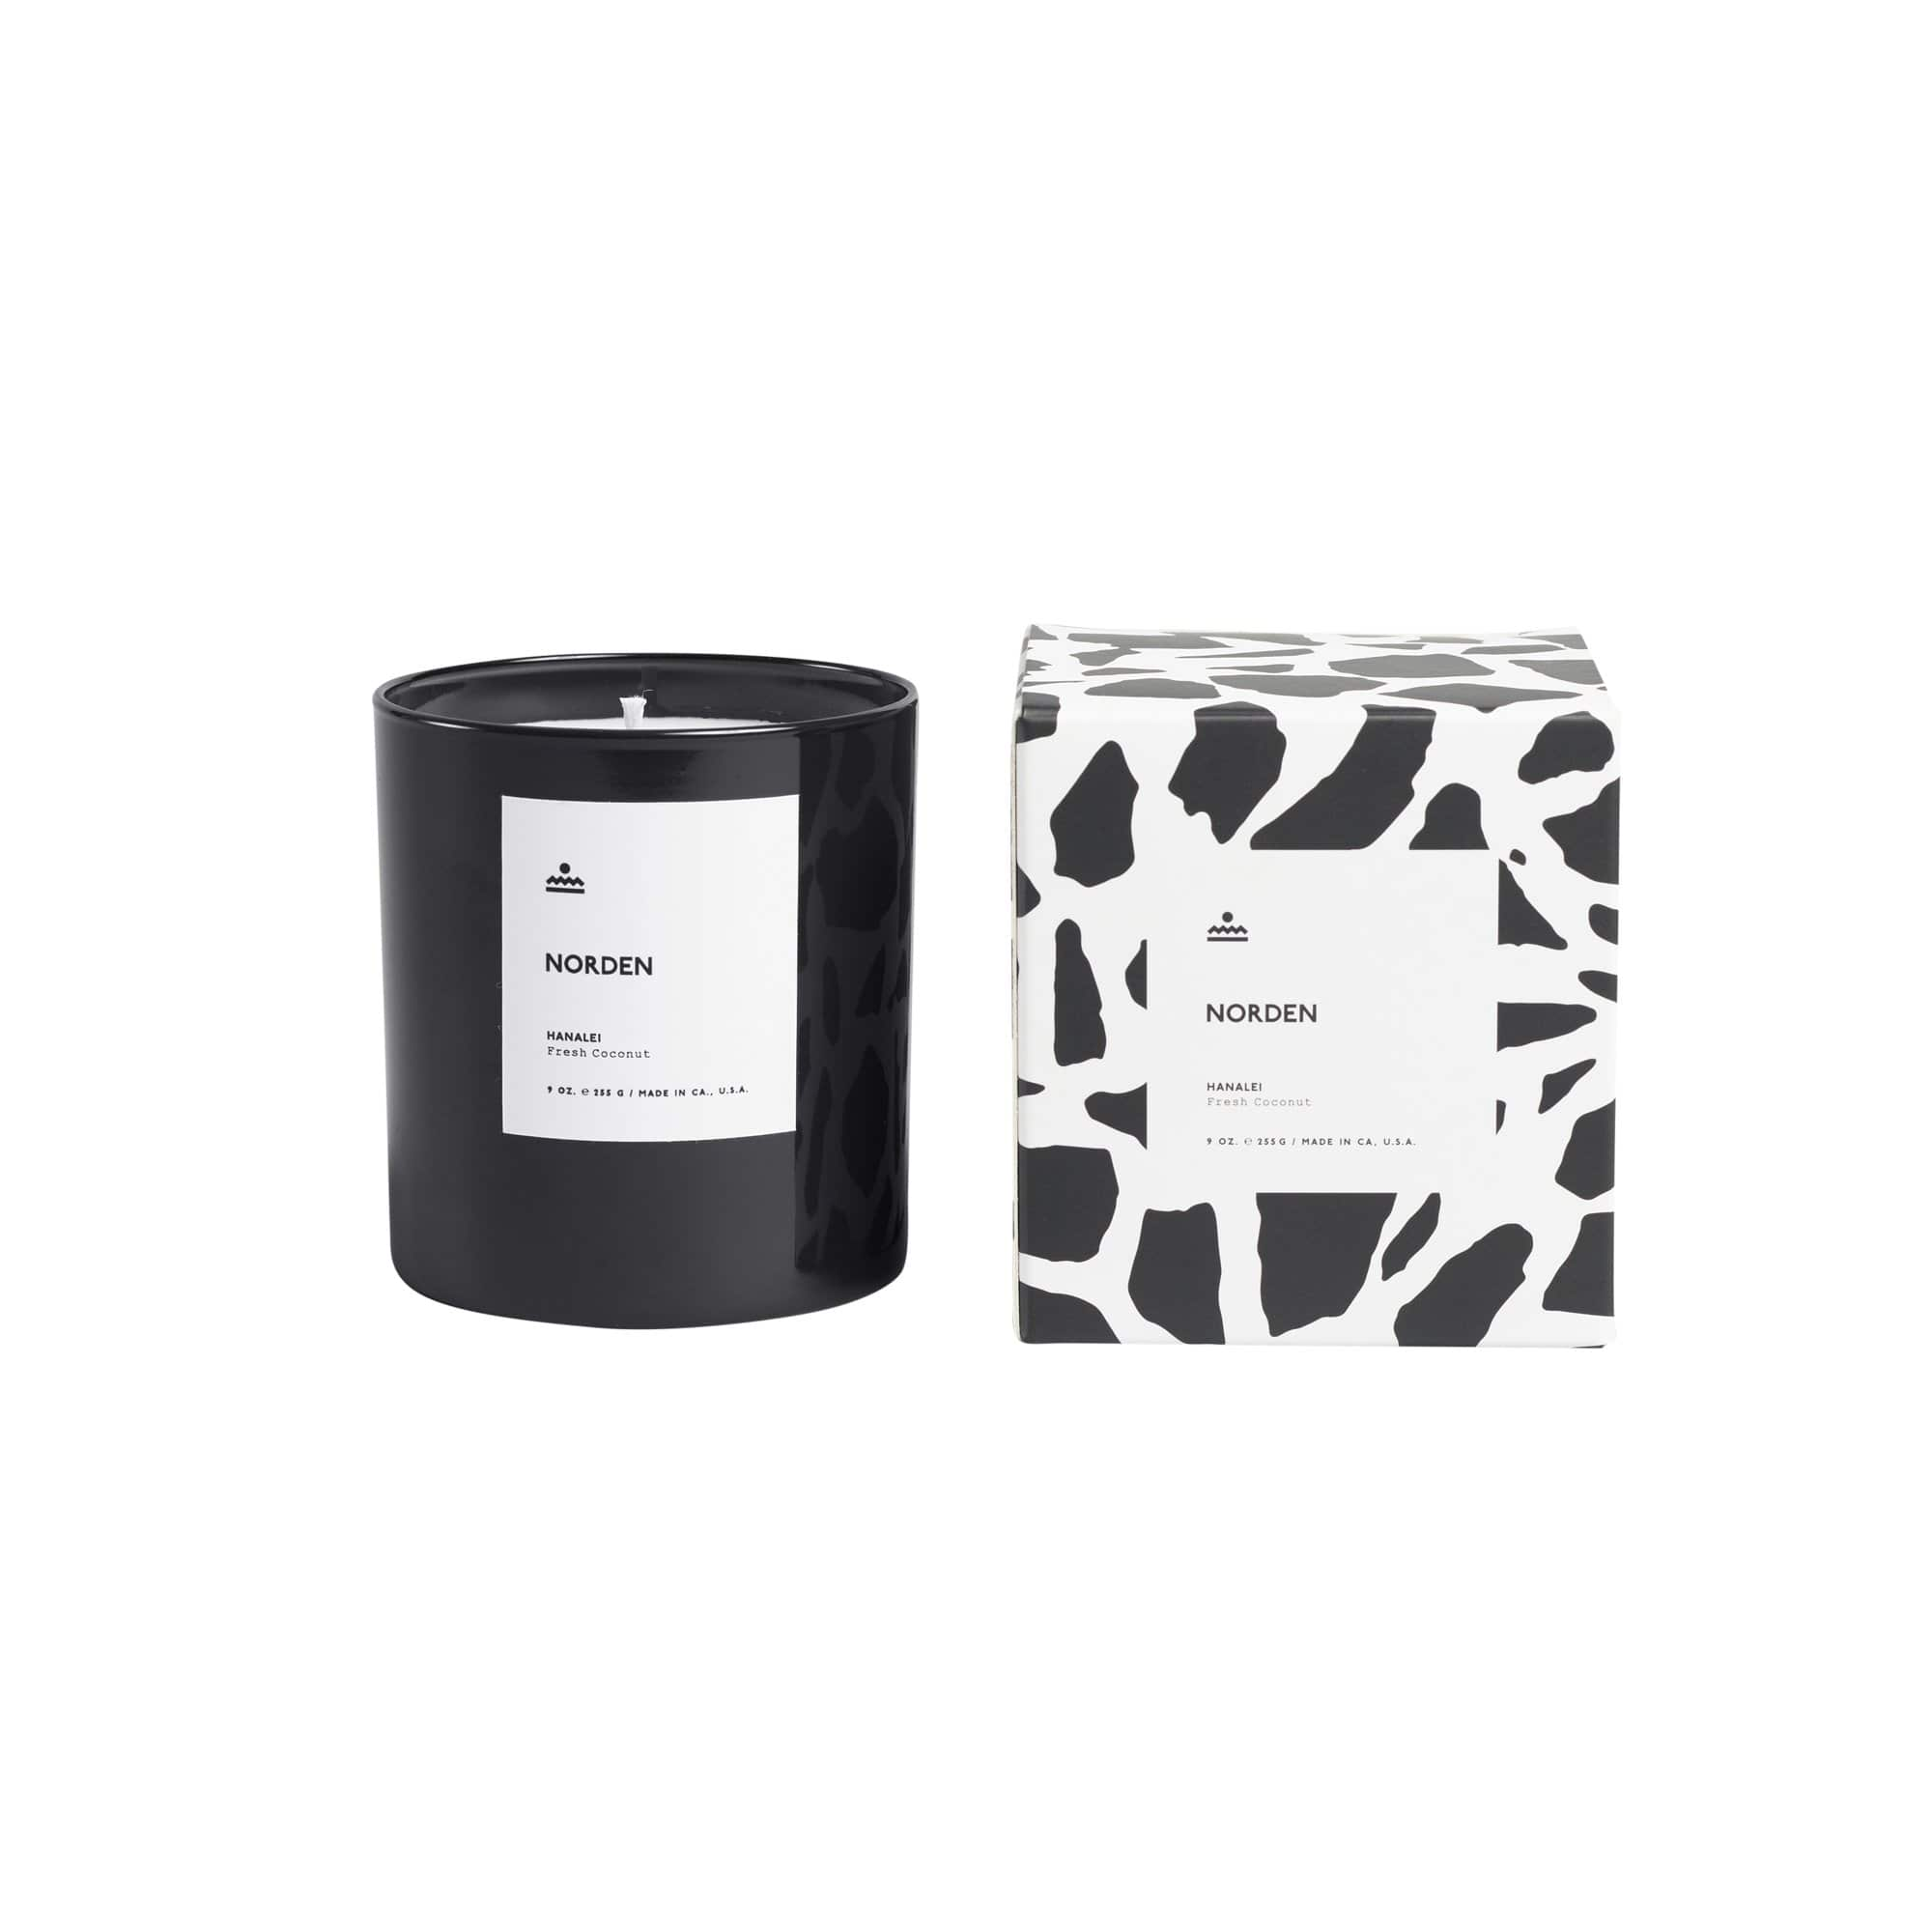 Norden Goods Candles, Diffusers + Incense Hanalei 9 oz. Glass Candle